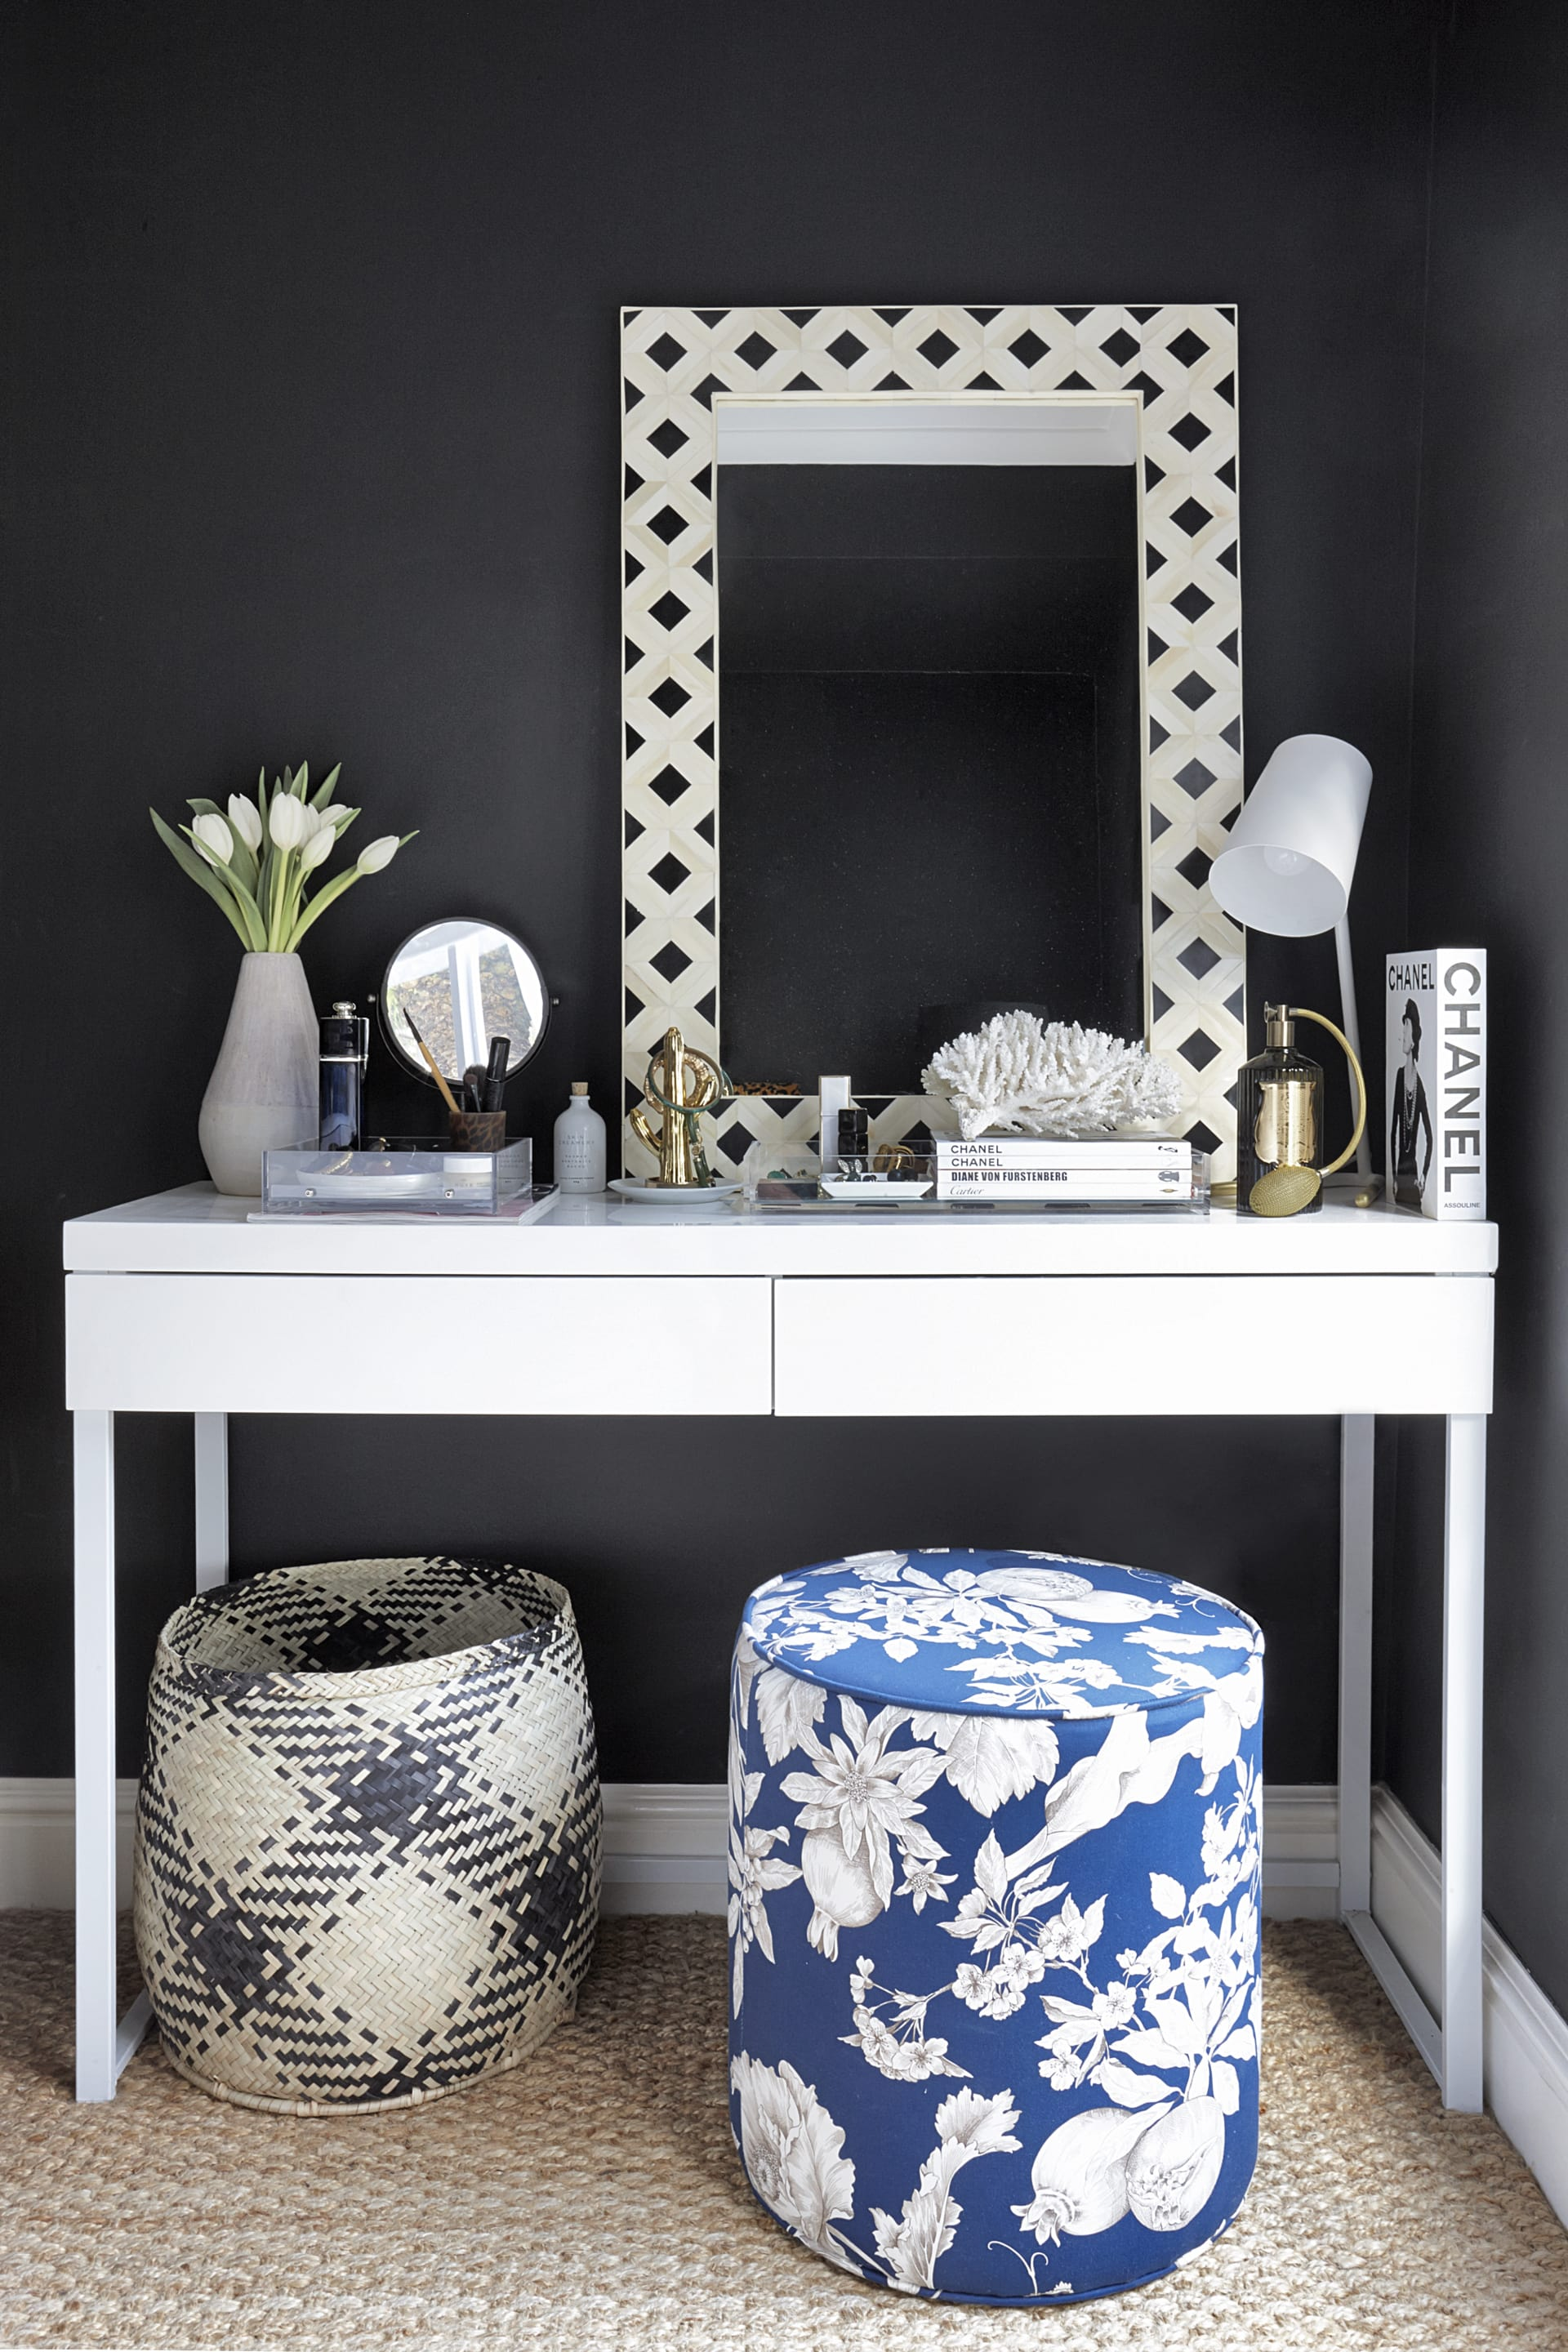 The bedroom vanity is a blend of handcrafted and modern pieces all sourced locally in South Africa.© Micky Hoyle